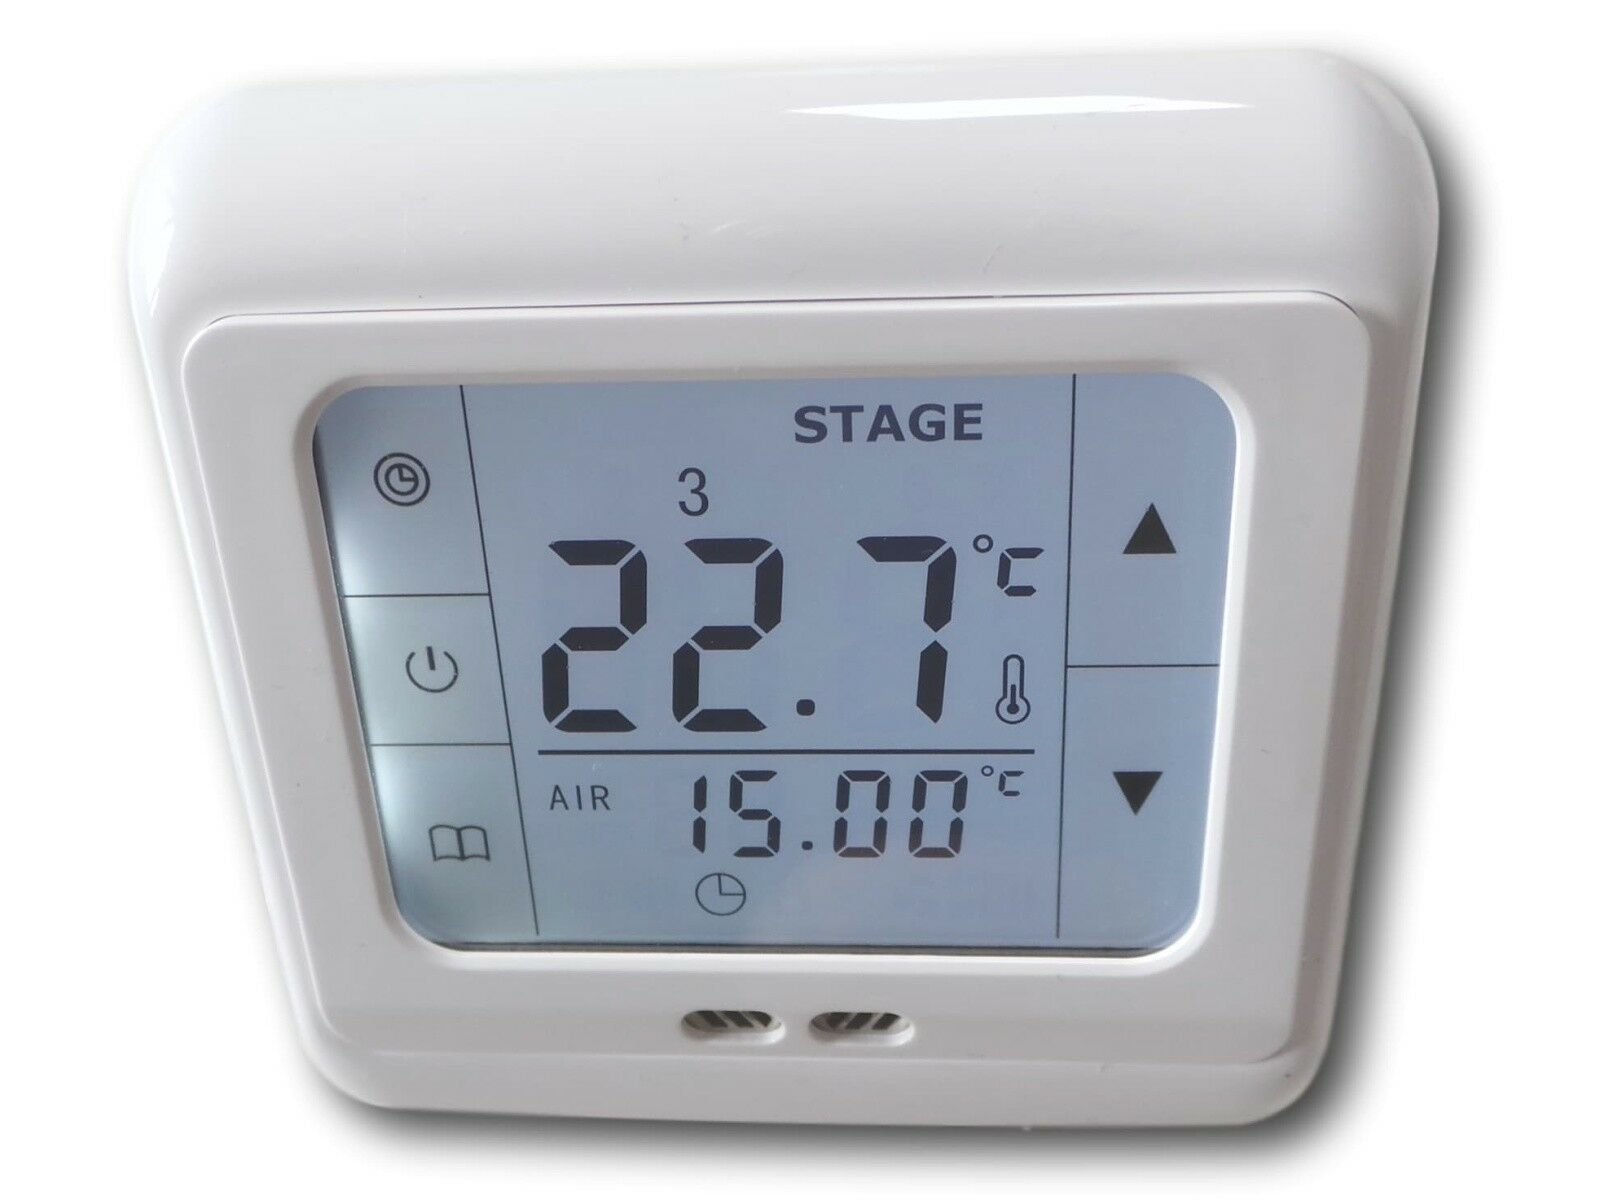 digital thermostat m touchscreen raumthermostat fu bodenheizung weiss z832 eur 16 99. Black Bedroom Furniture Sets. Home Design Ideas